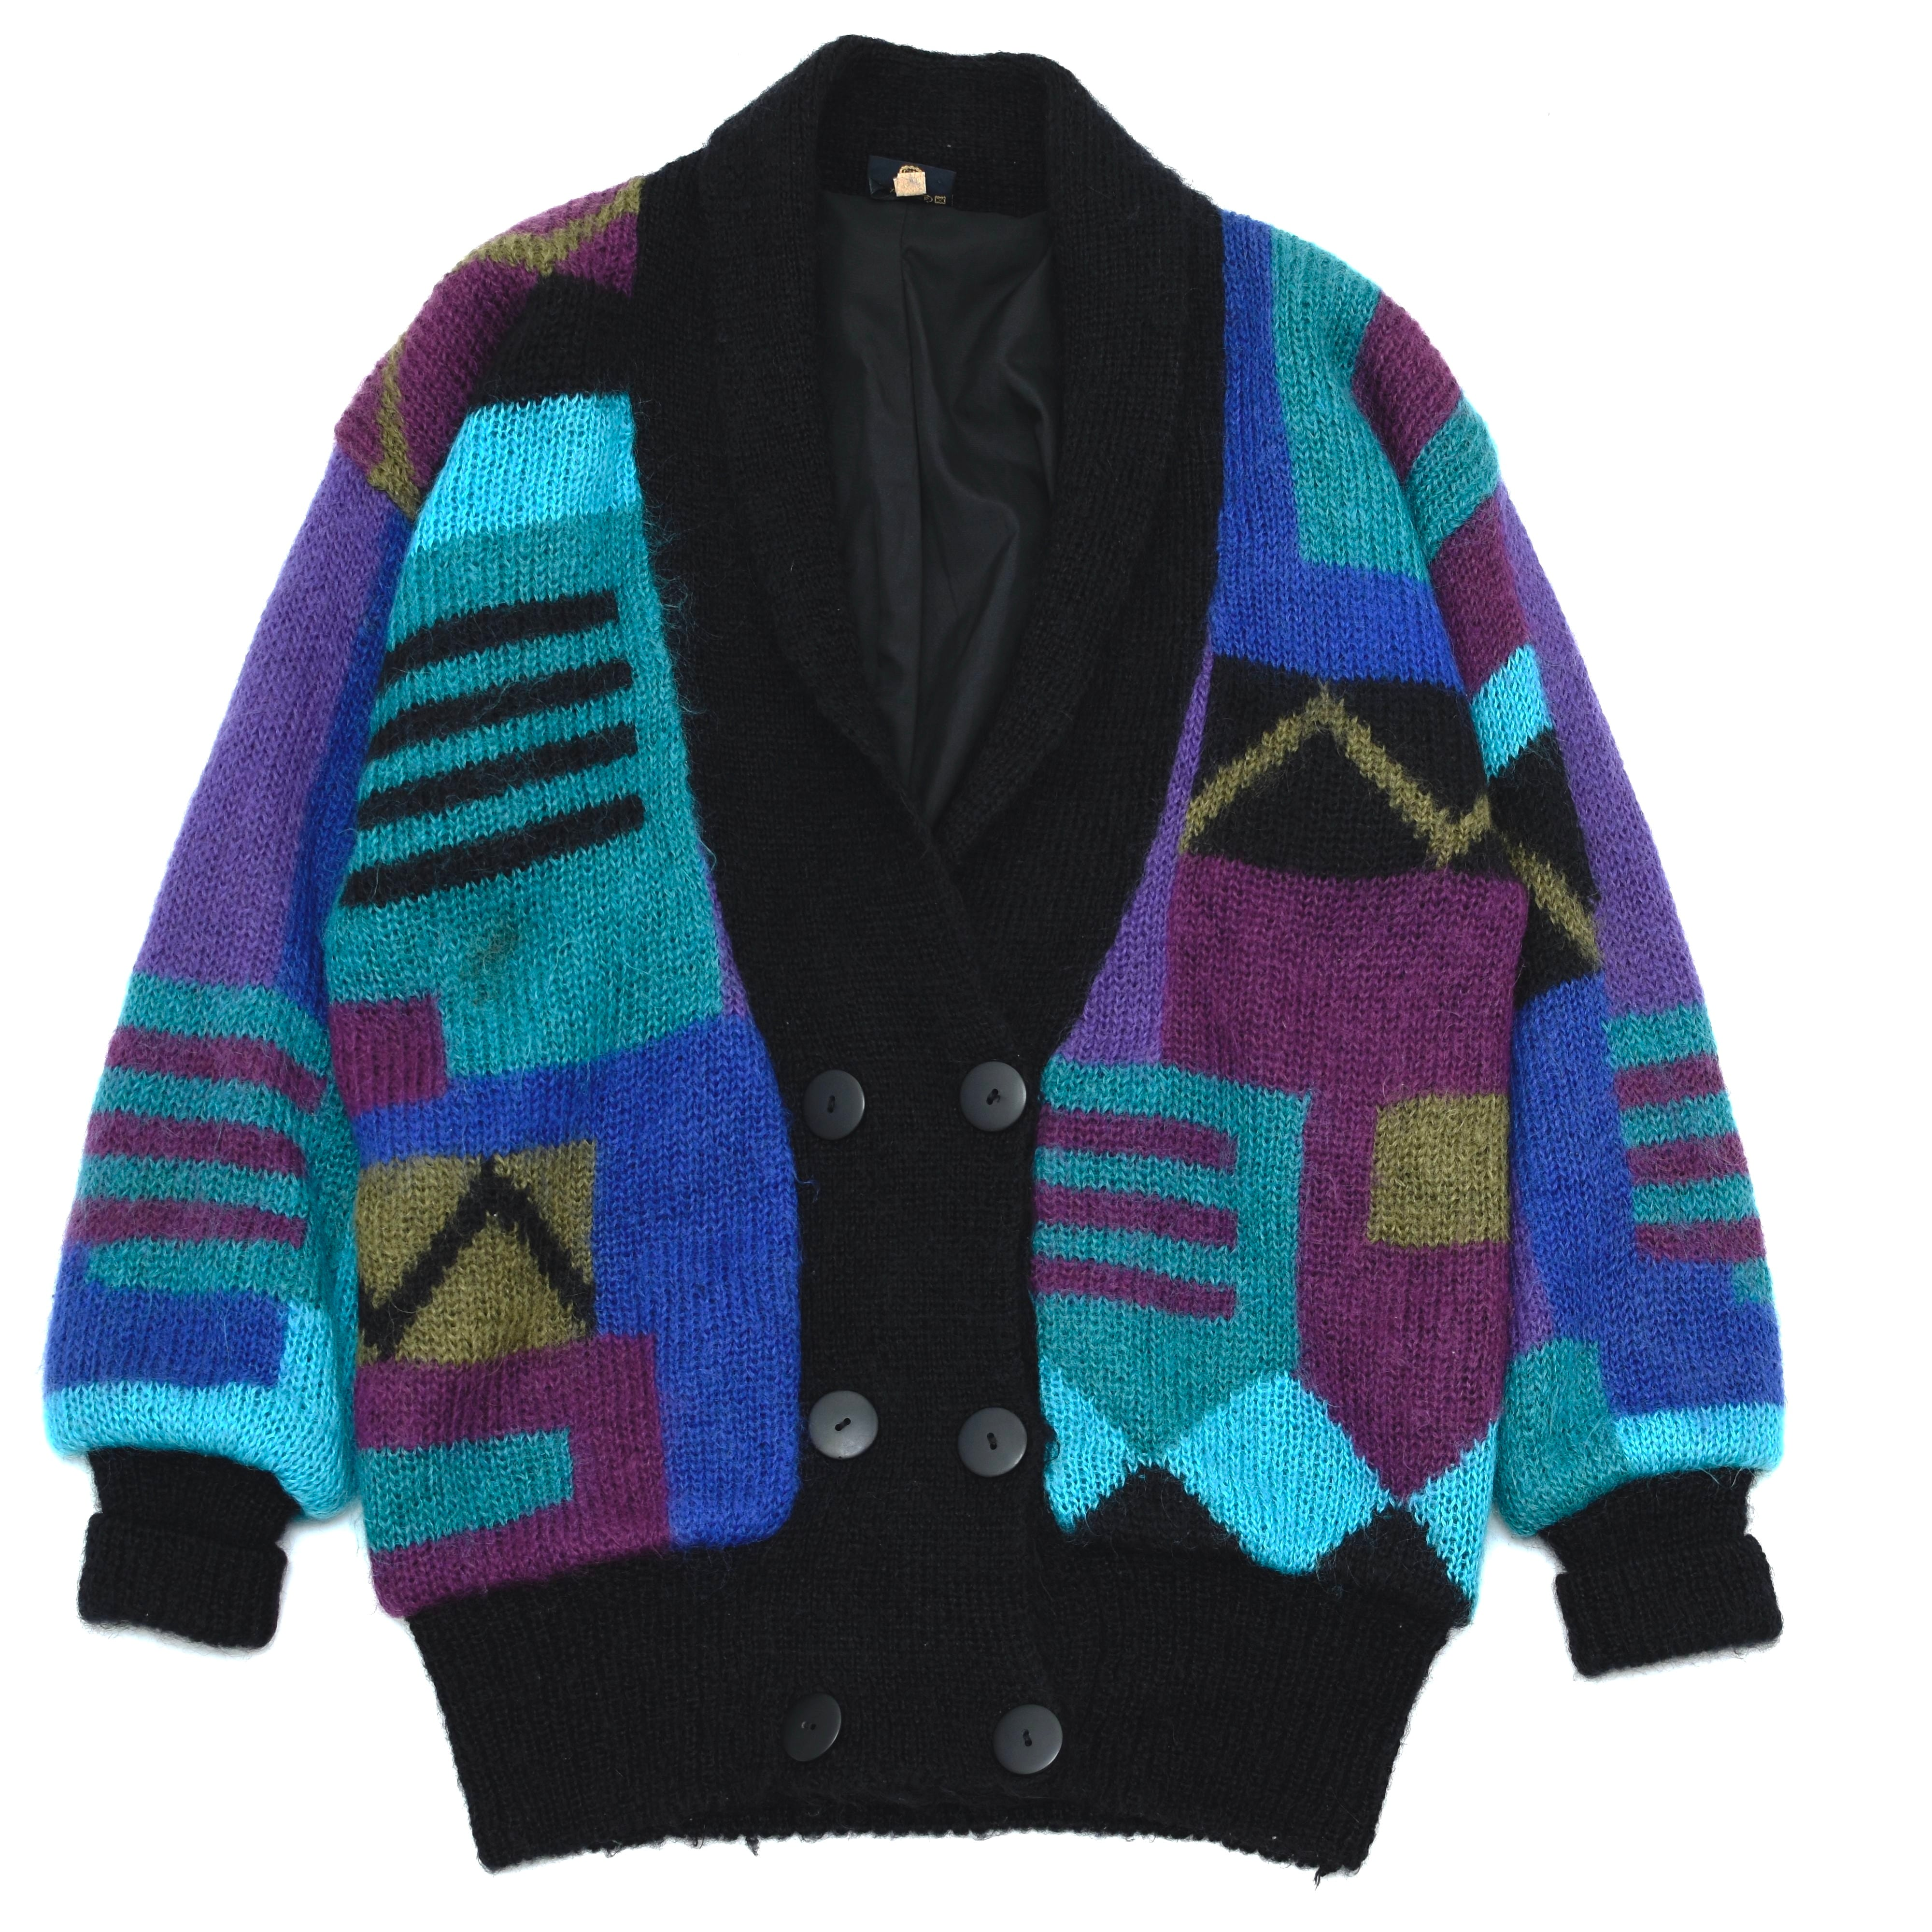 Vintage colorful mohair knit cardigan